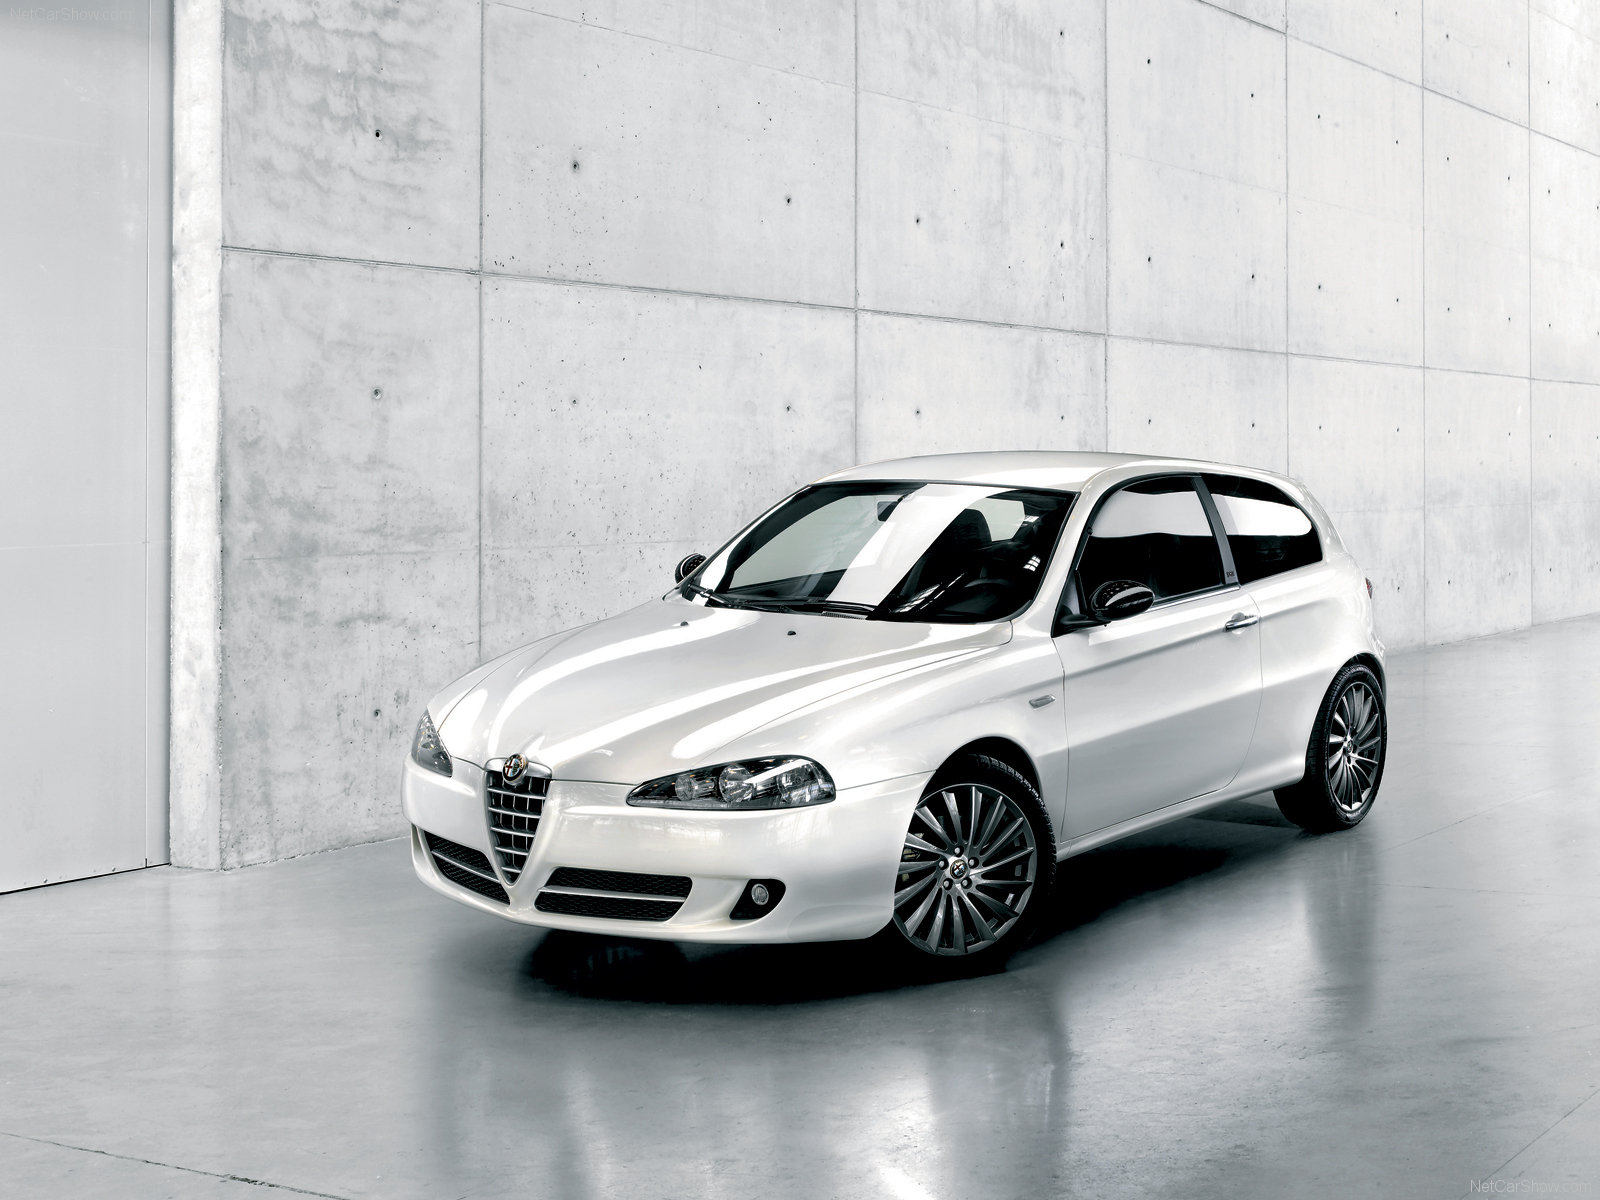 1600x1200 - Alfa Romeo 147 Wallpapers 38